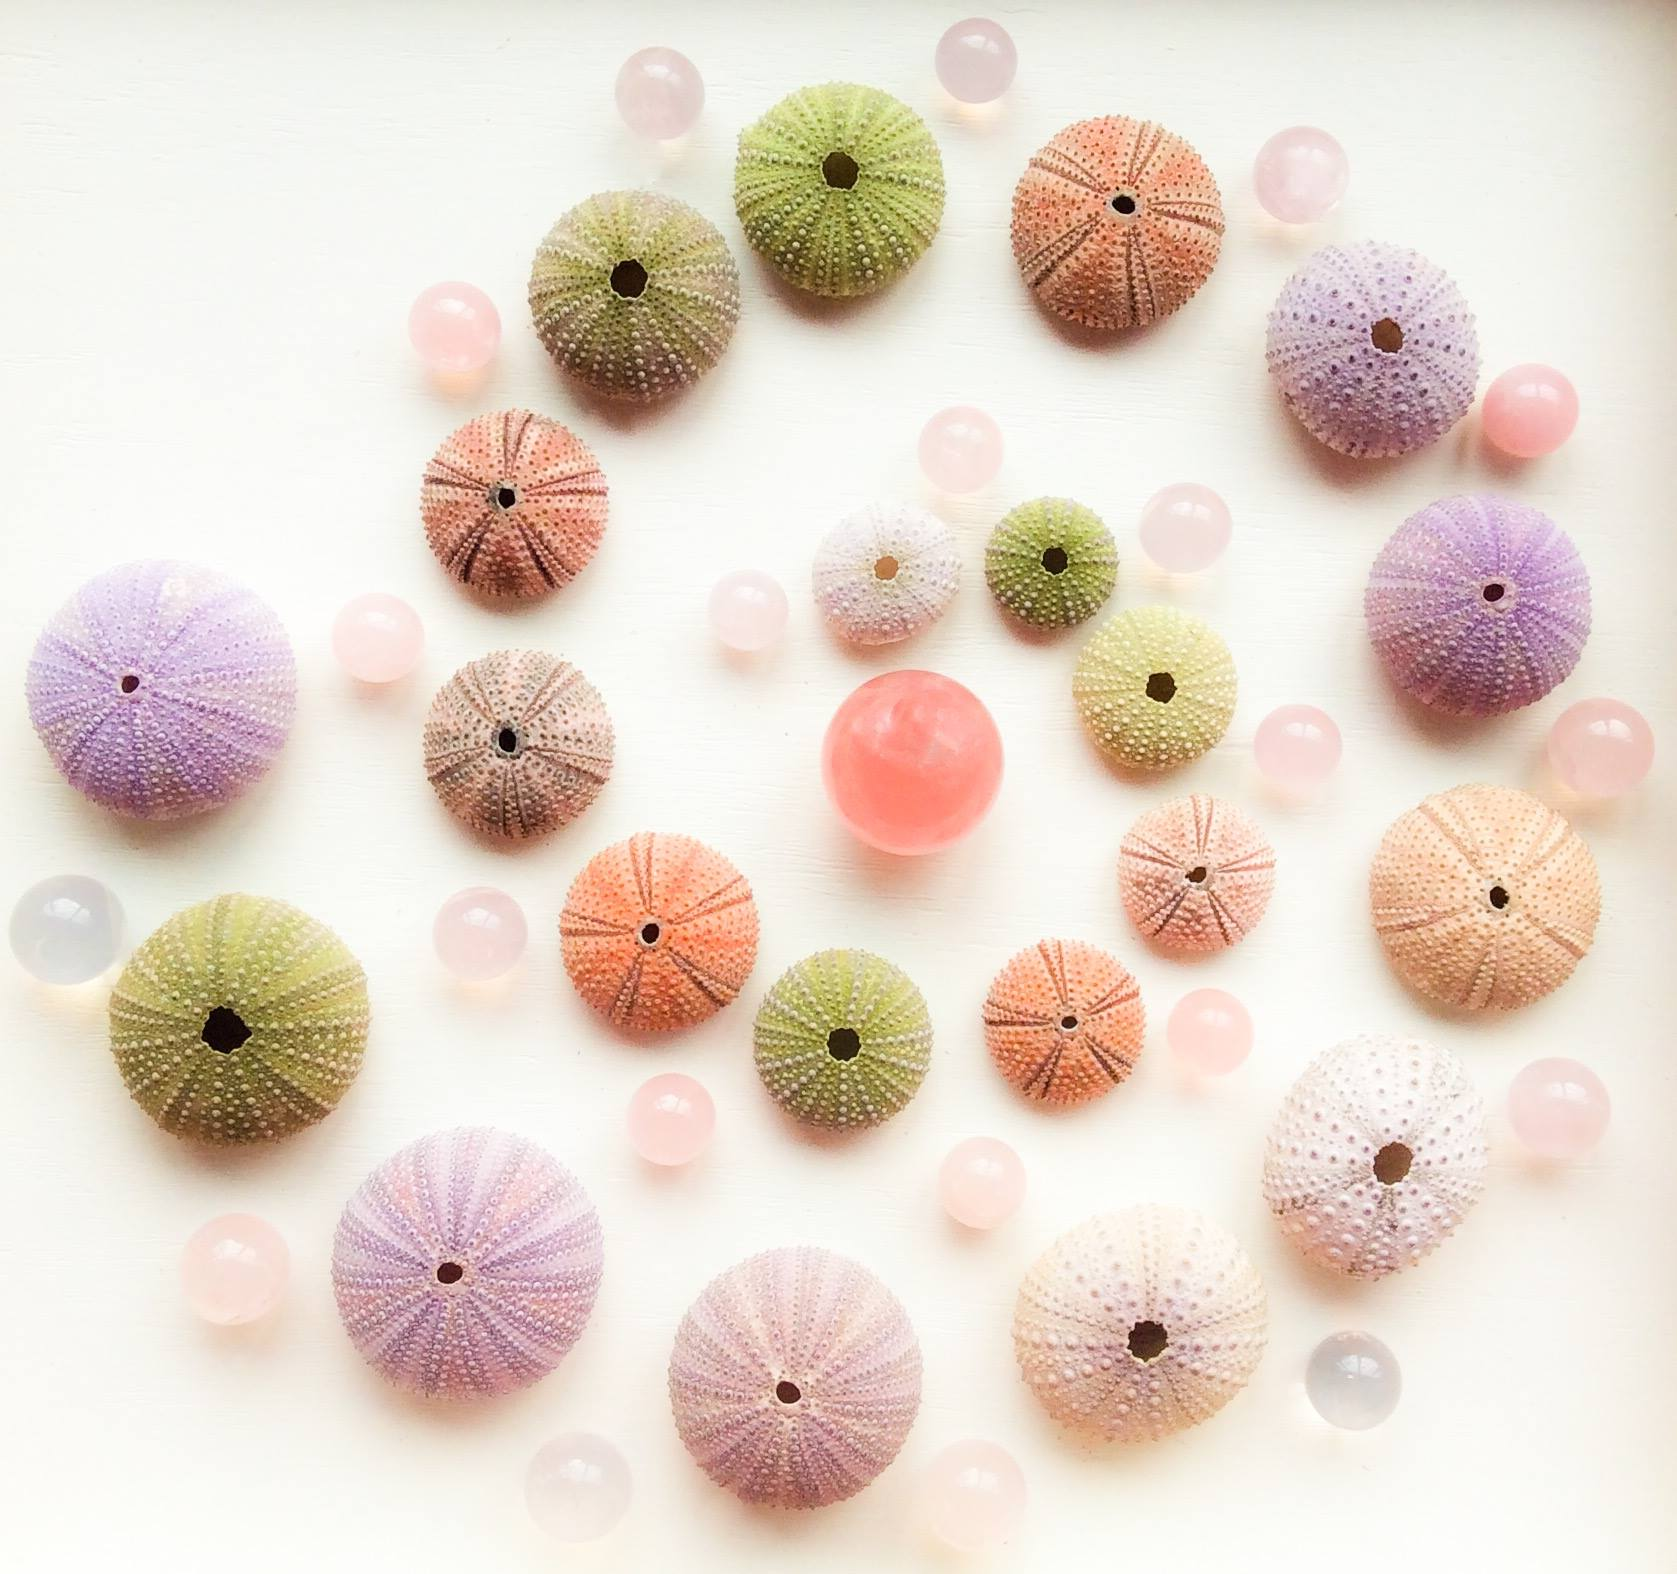 Rose Quartz, Pink Girasol and Sea Urchins